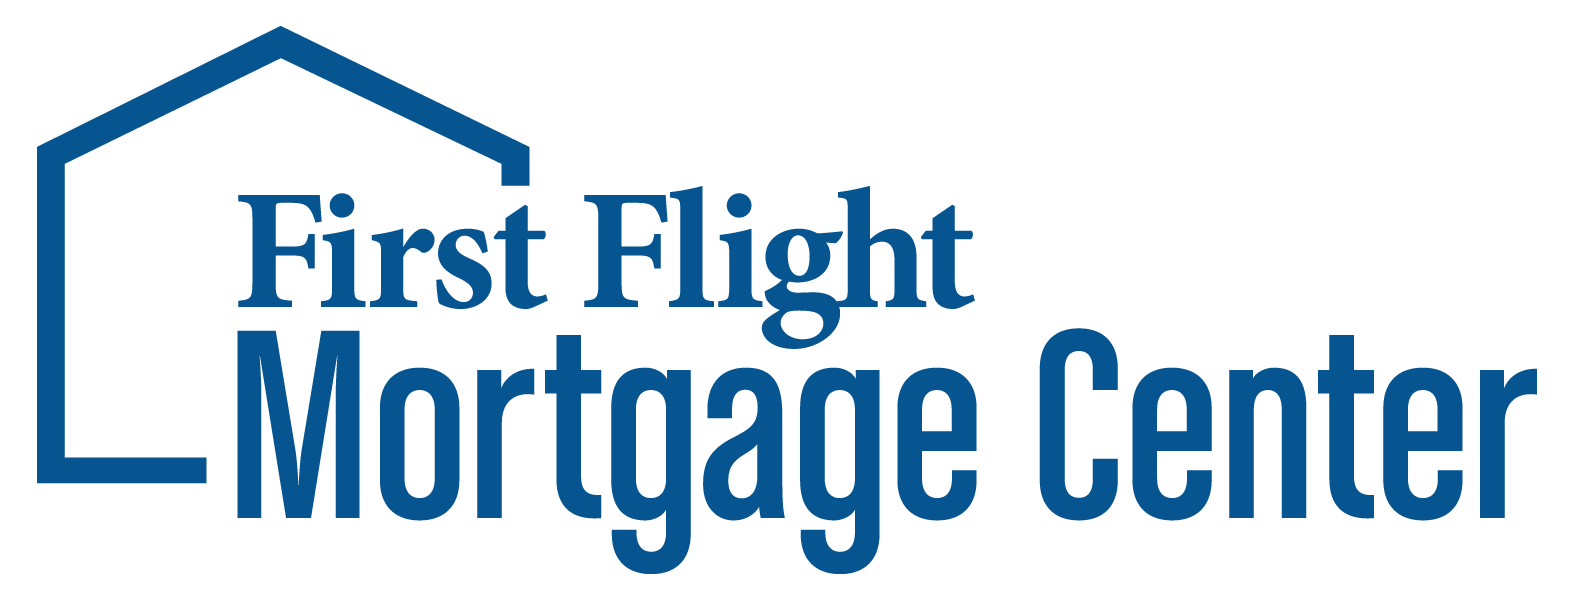 SP233 FirstFlight Mortgage Center Logo 1 Color.png